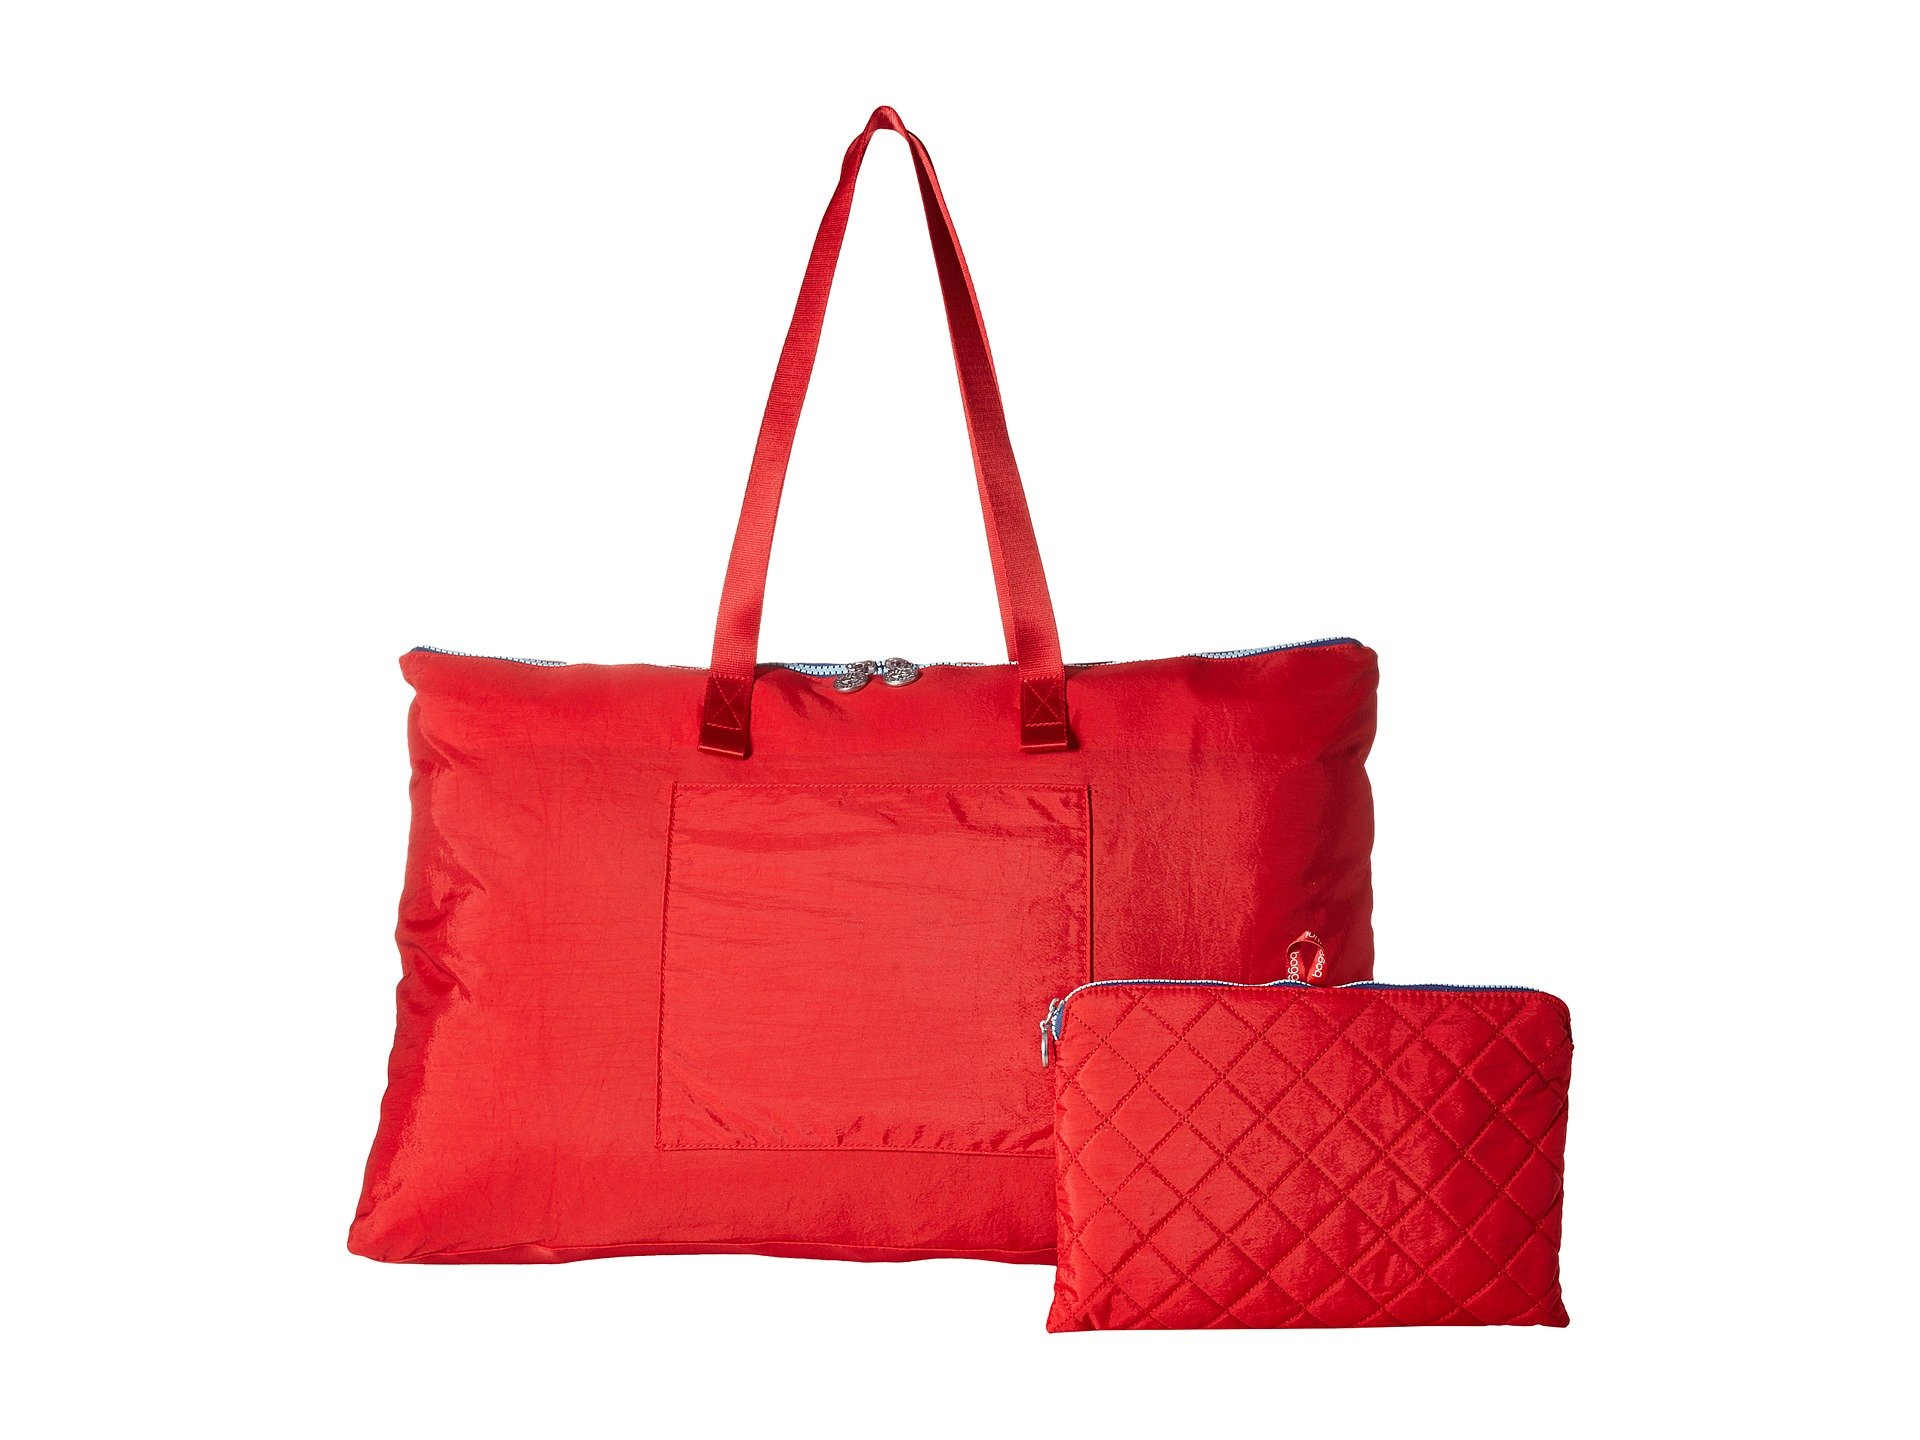 navy Tote Foldable Classic New Baggallini Travel Red wxFf6q6SW